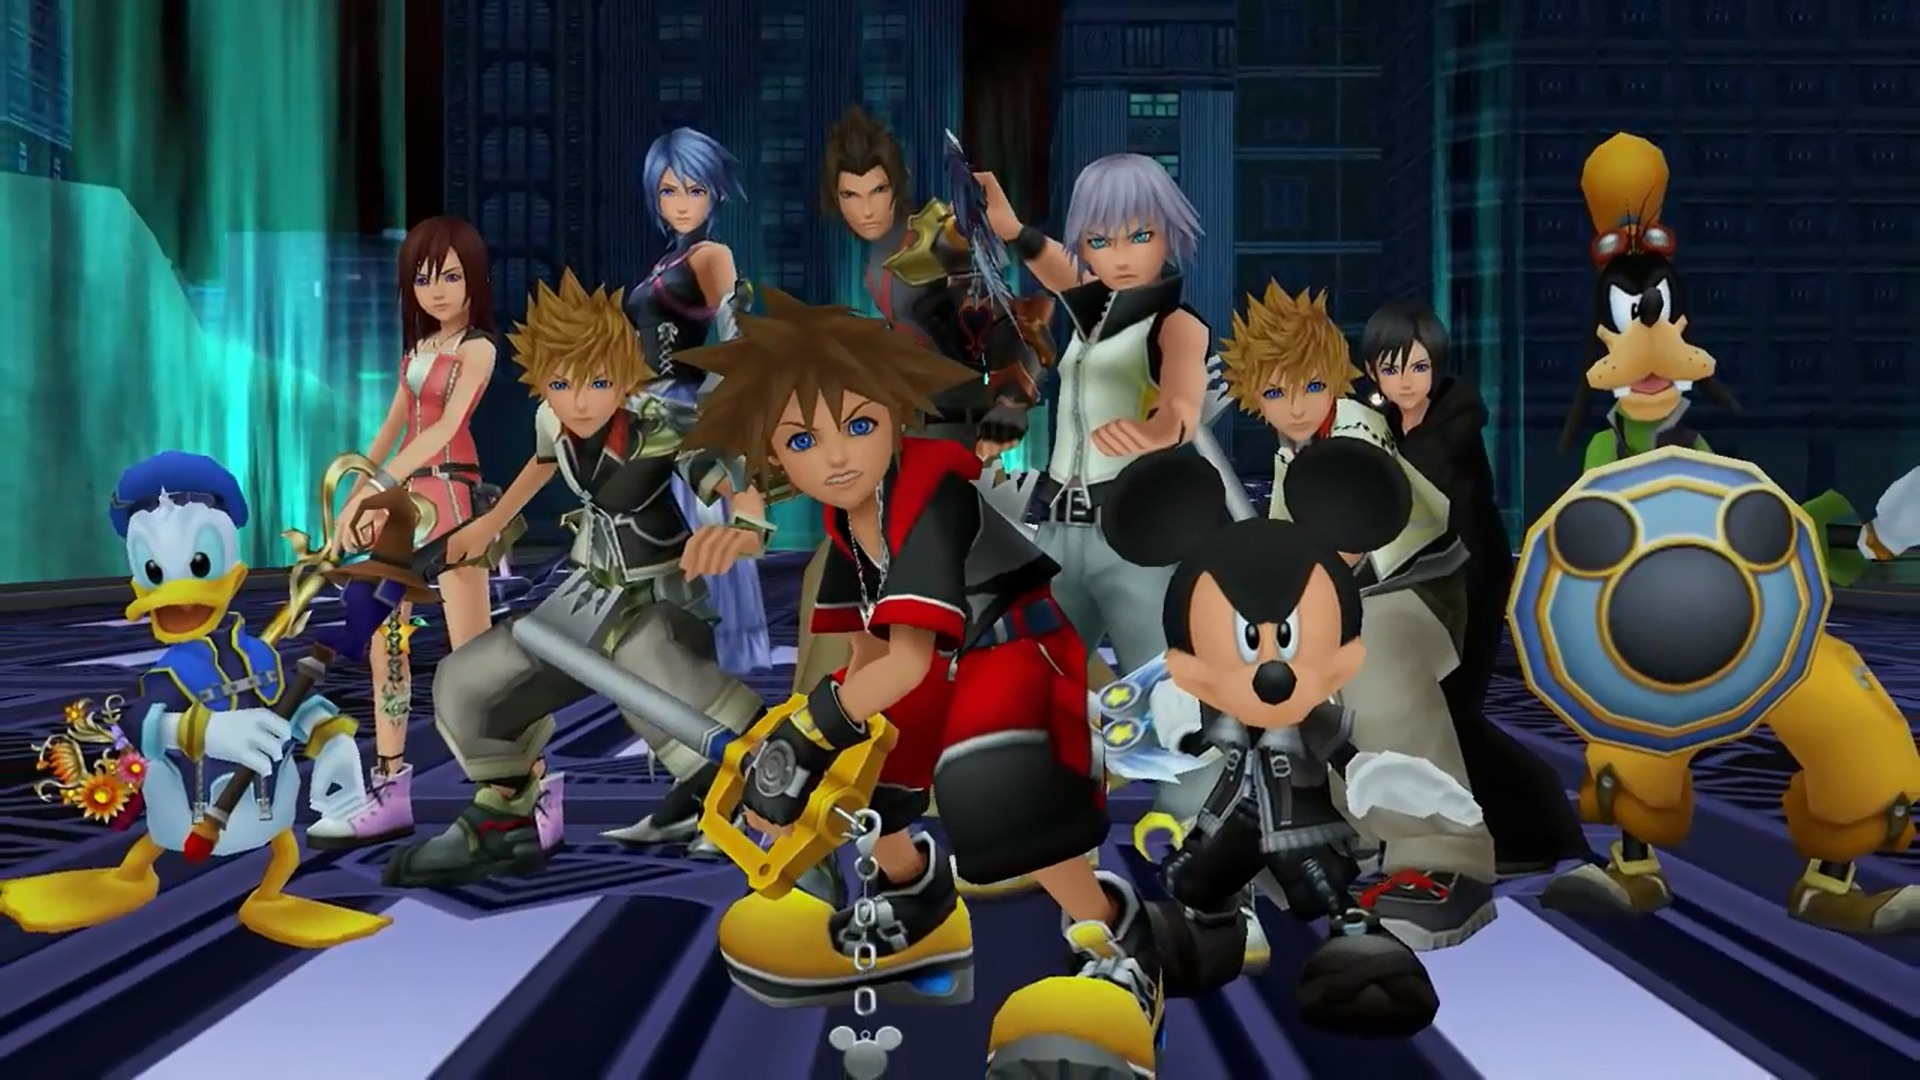 from Luke kingdom of hearts dating service